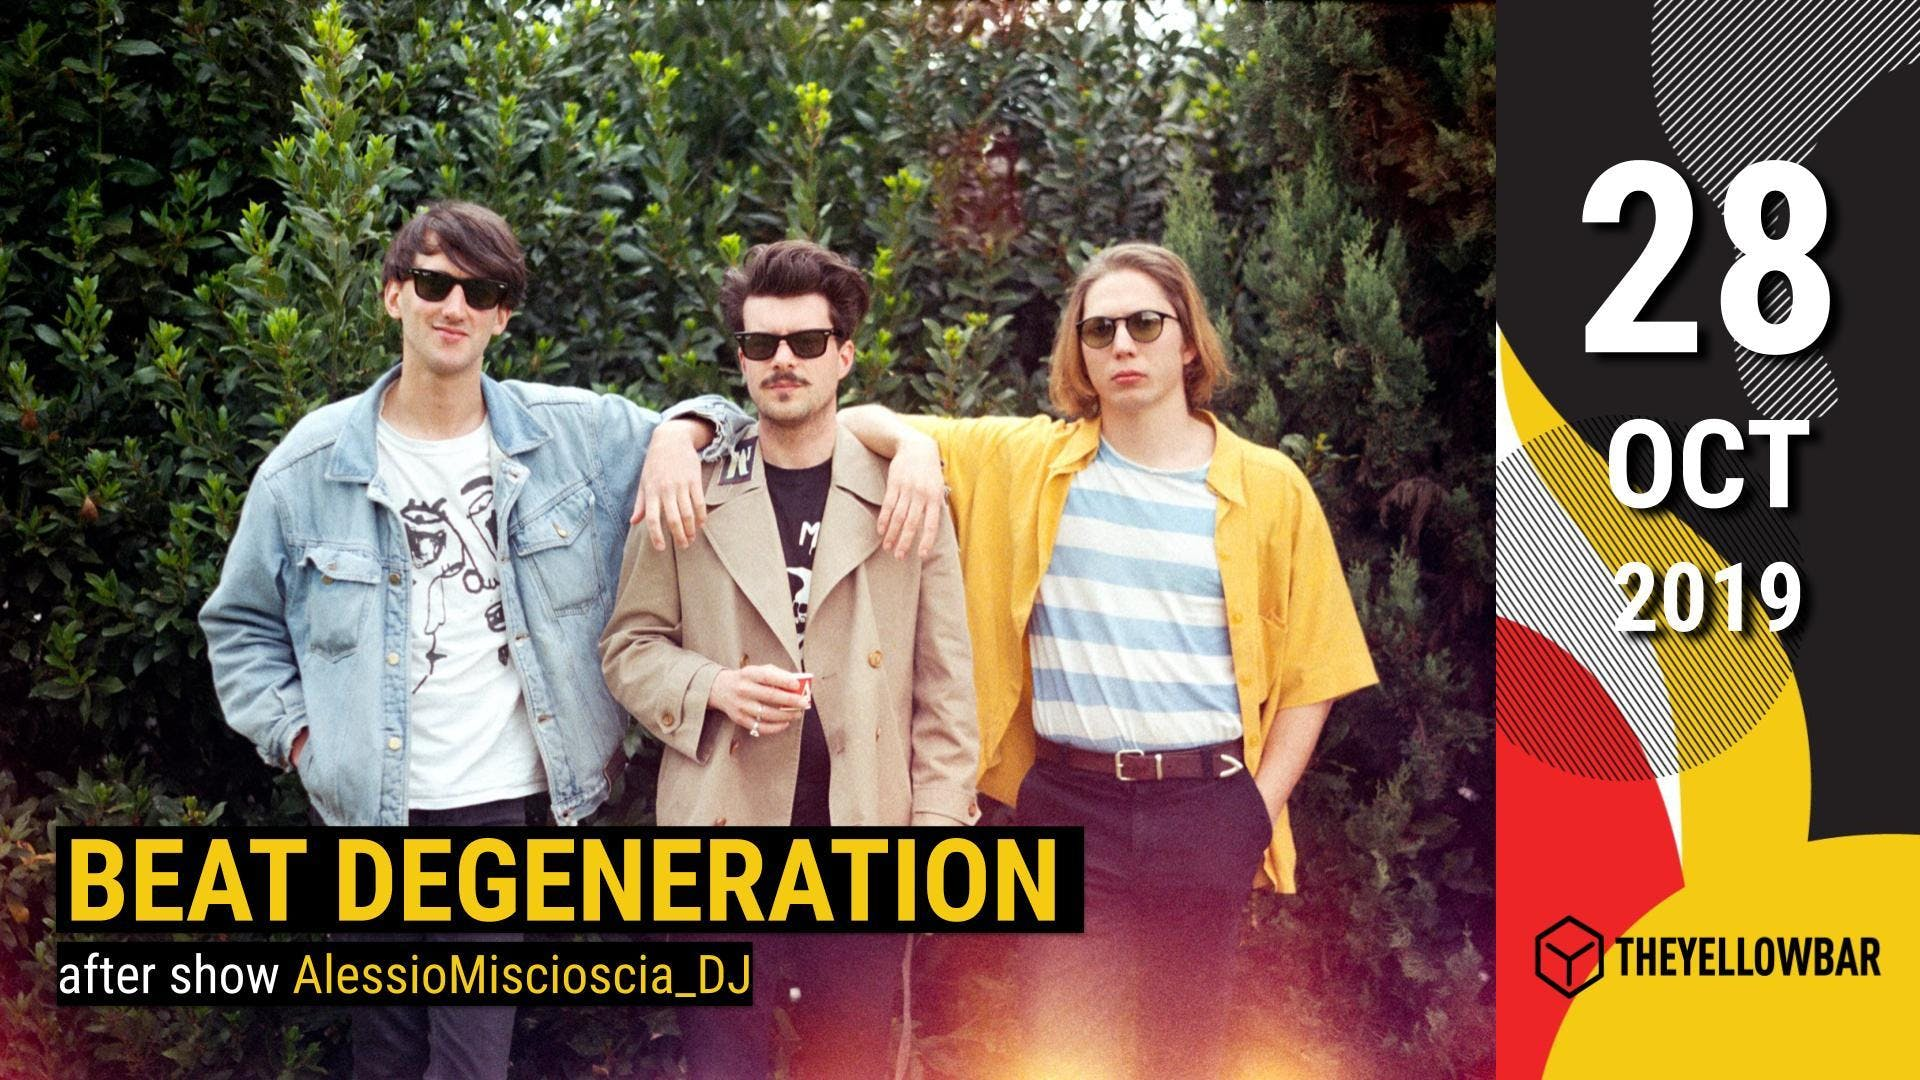 Beat Degeneration - The Yellow Bar